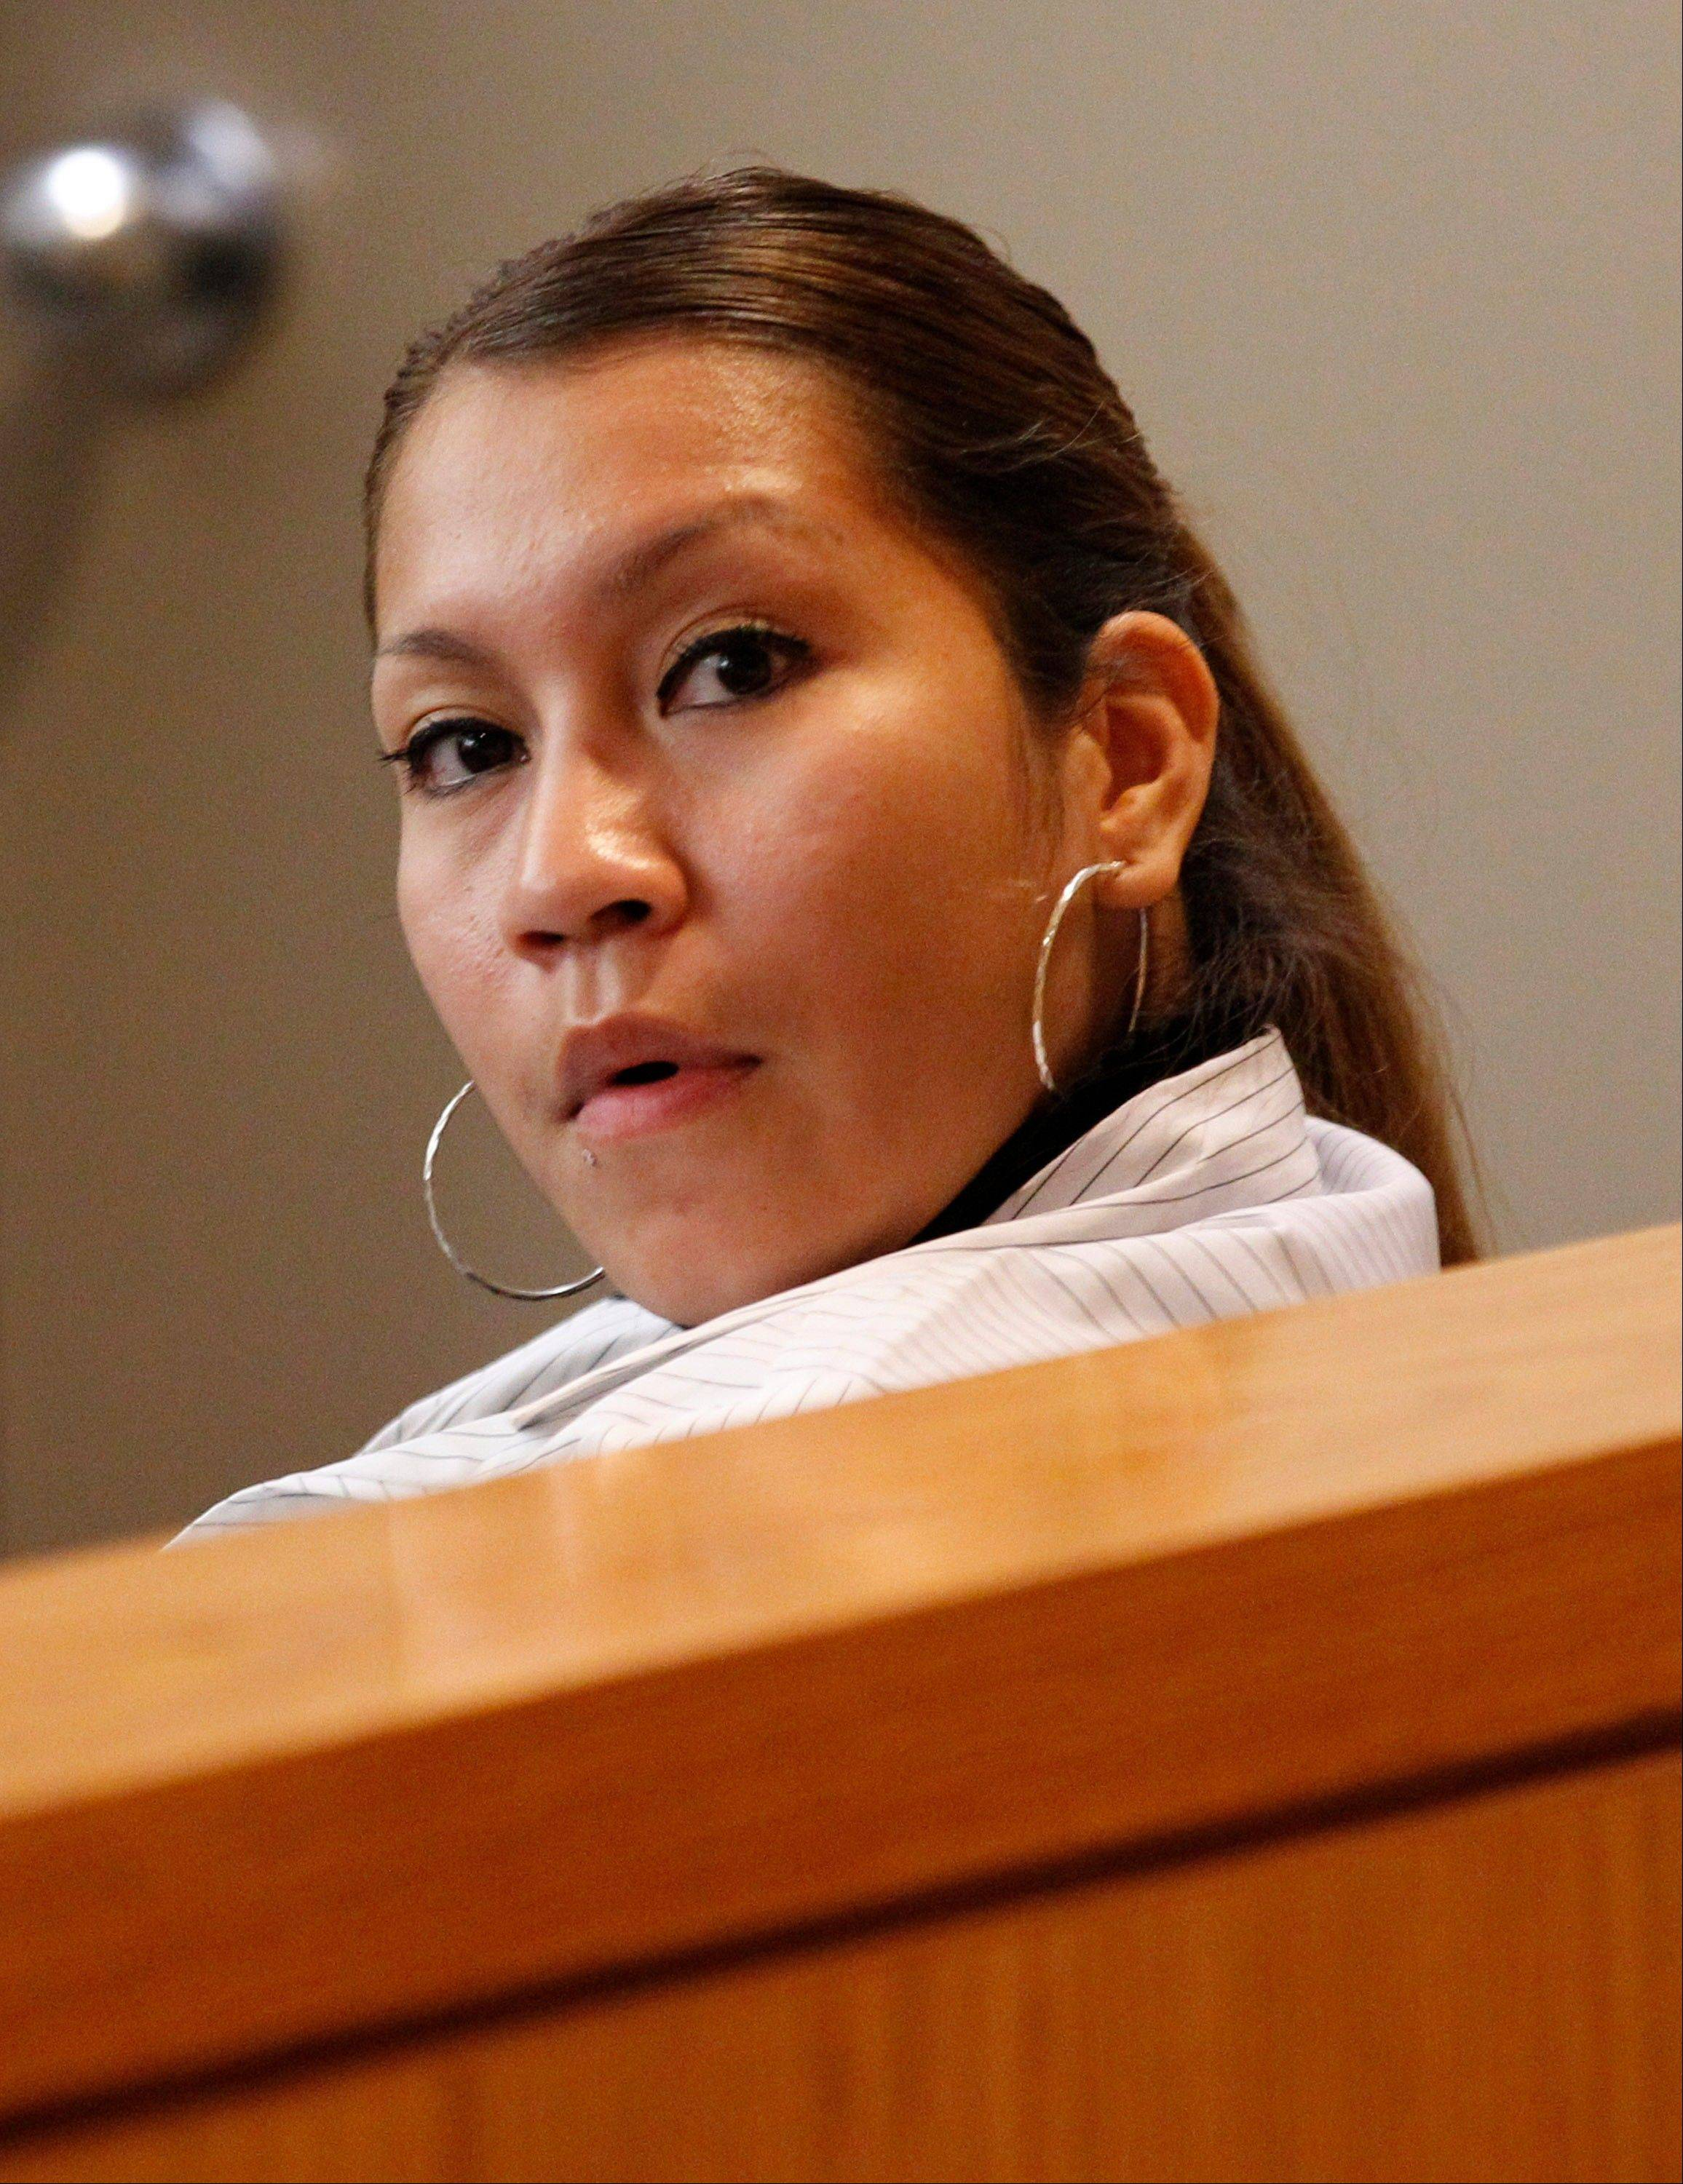 Elizabeth Escalona, 23, sits in a courtroom Monday during a sentencing hearing in Dallas. Escalona pleaded guilty in July to injury to a child and is facing up to life in prison. A doctor has testified that the Texas mother glued her 2-year-old daughter's hands to a wall and beat the toddler so badly that she suffered significant brain trauma and bleeding inside her skull.